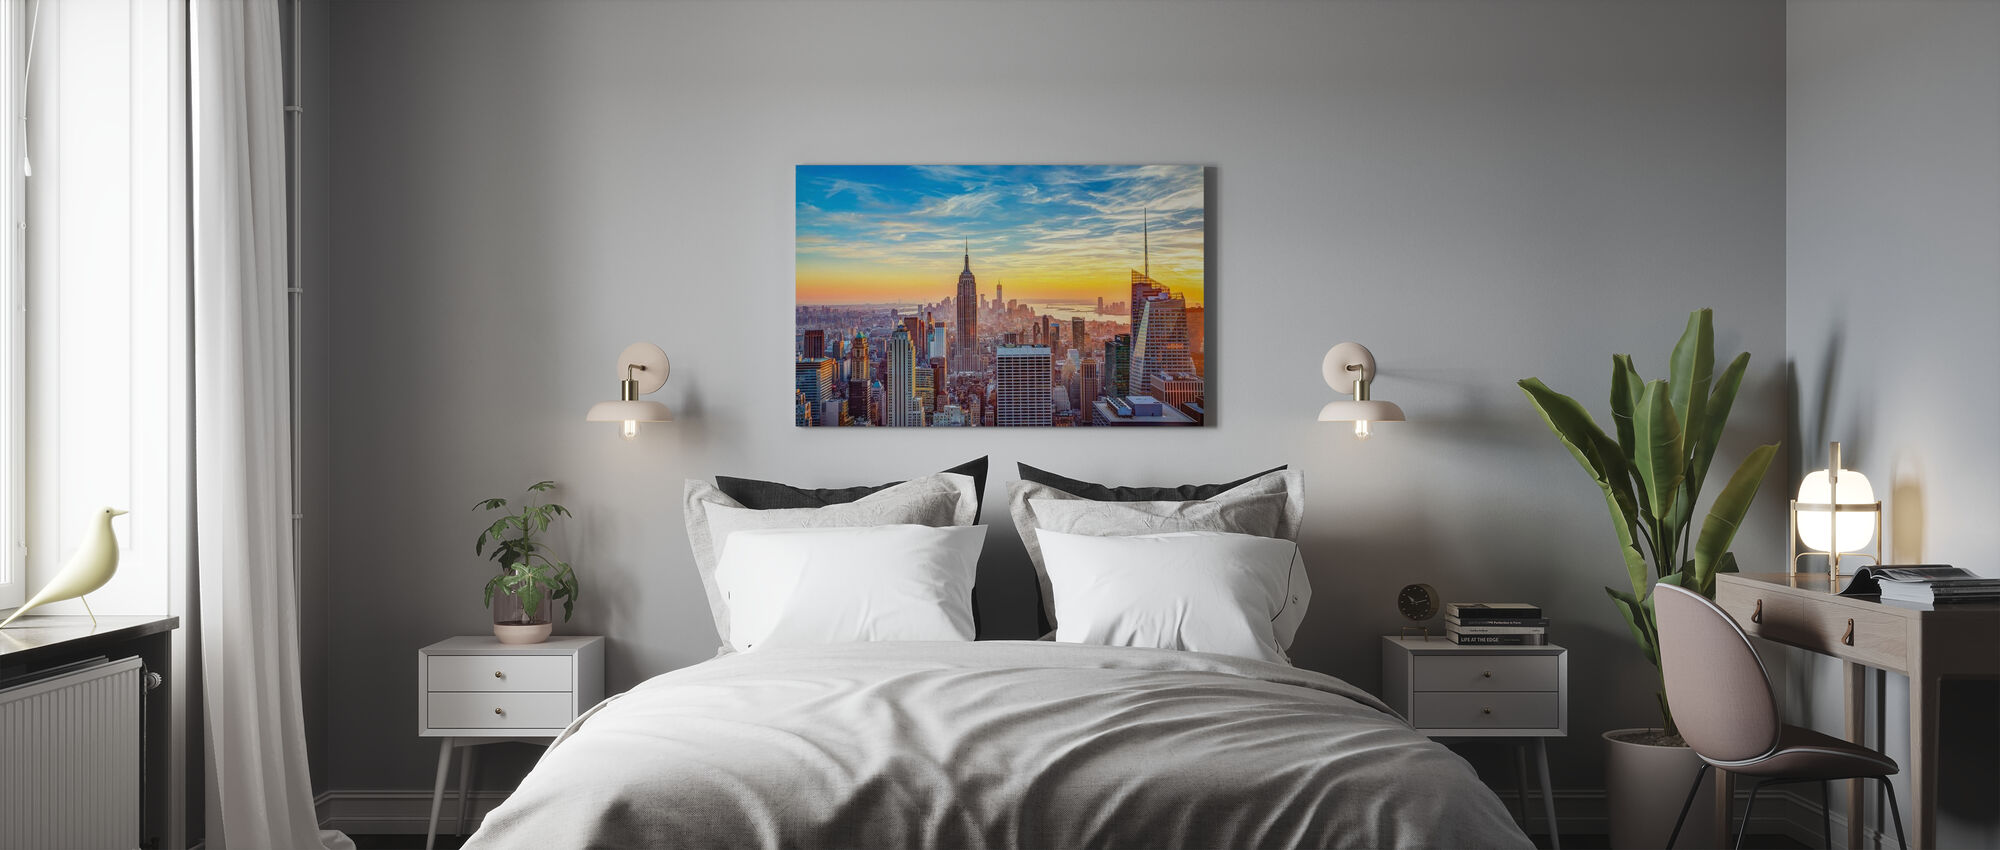 Aerial View of City - Canvas print - Bedroom